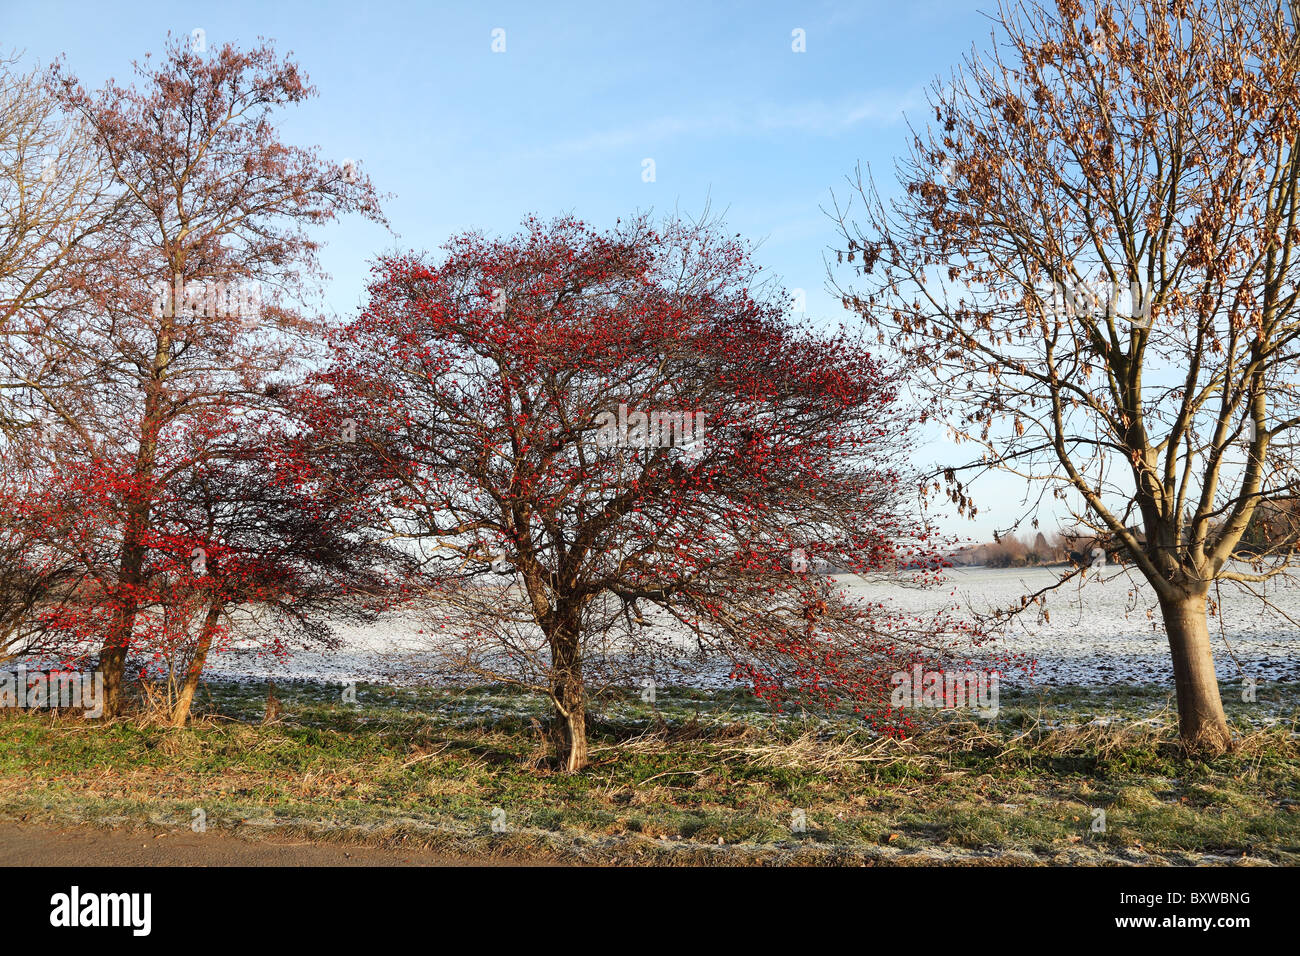 rowan-tree-in-berry-in-winter-BXWBNG.jpg